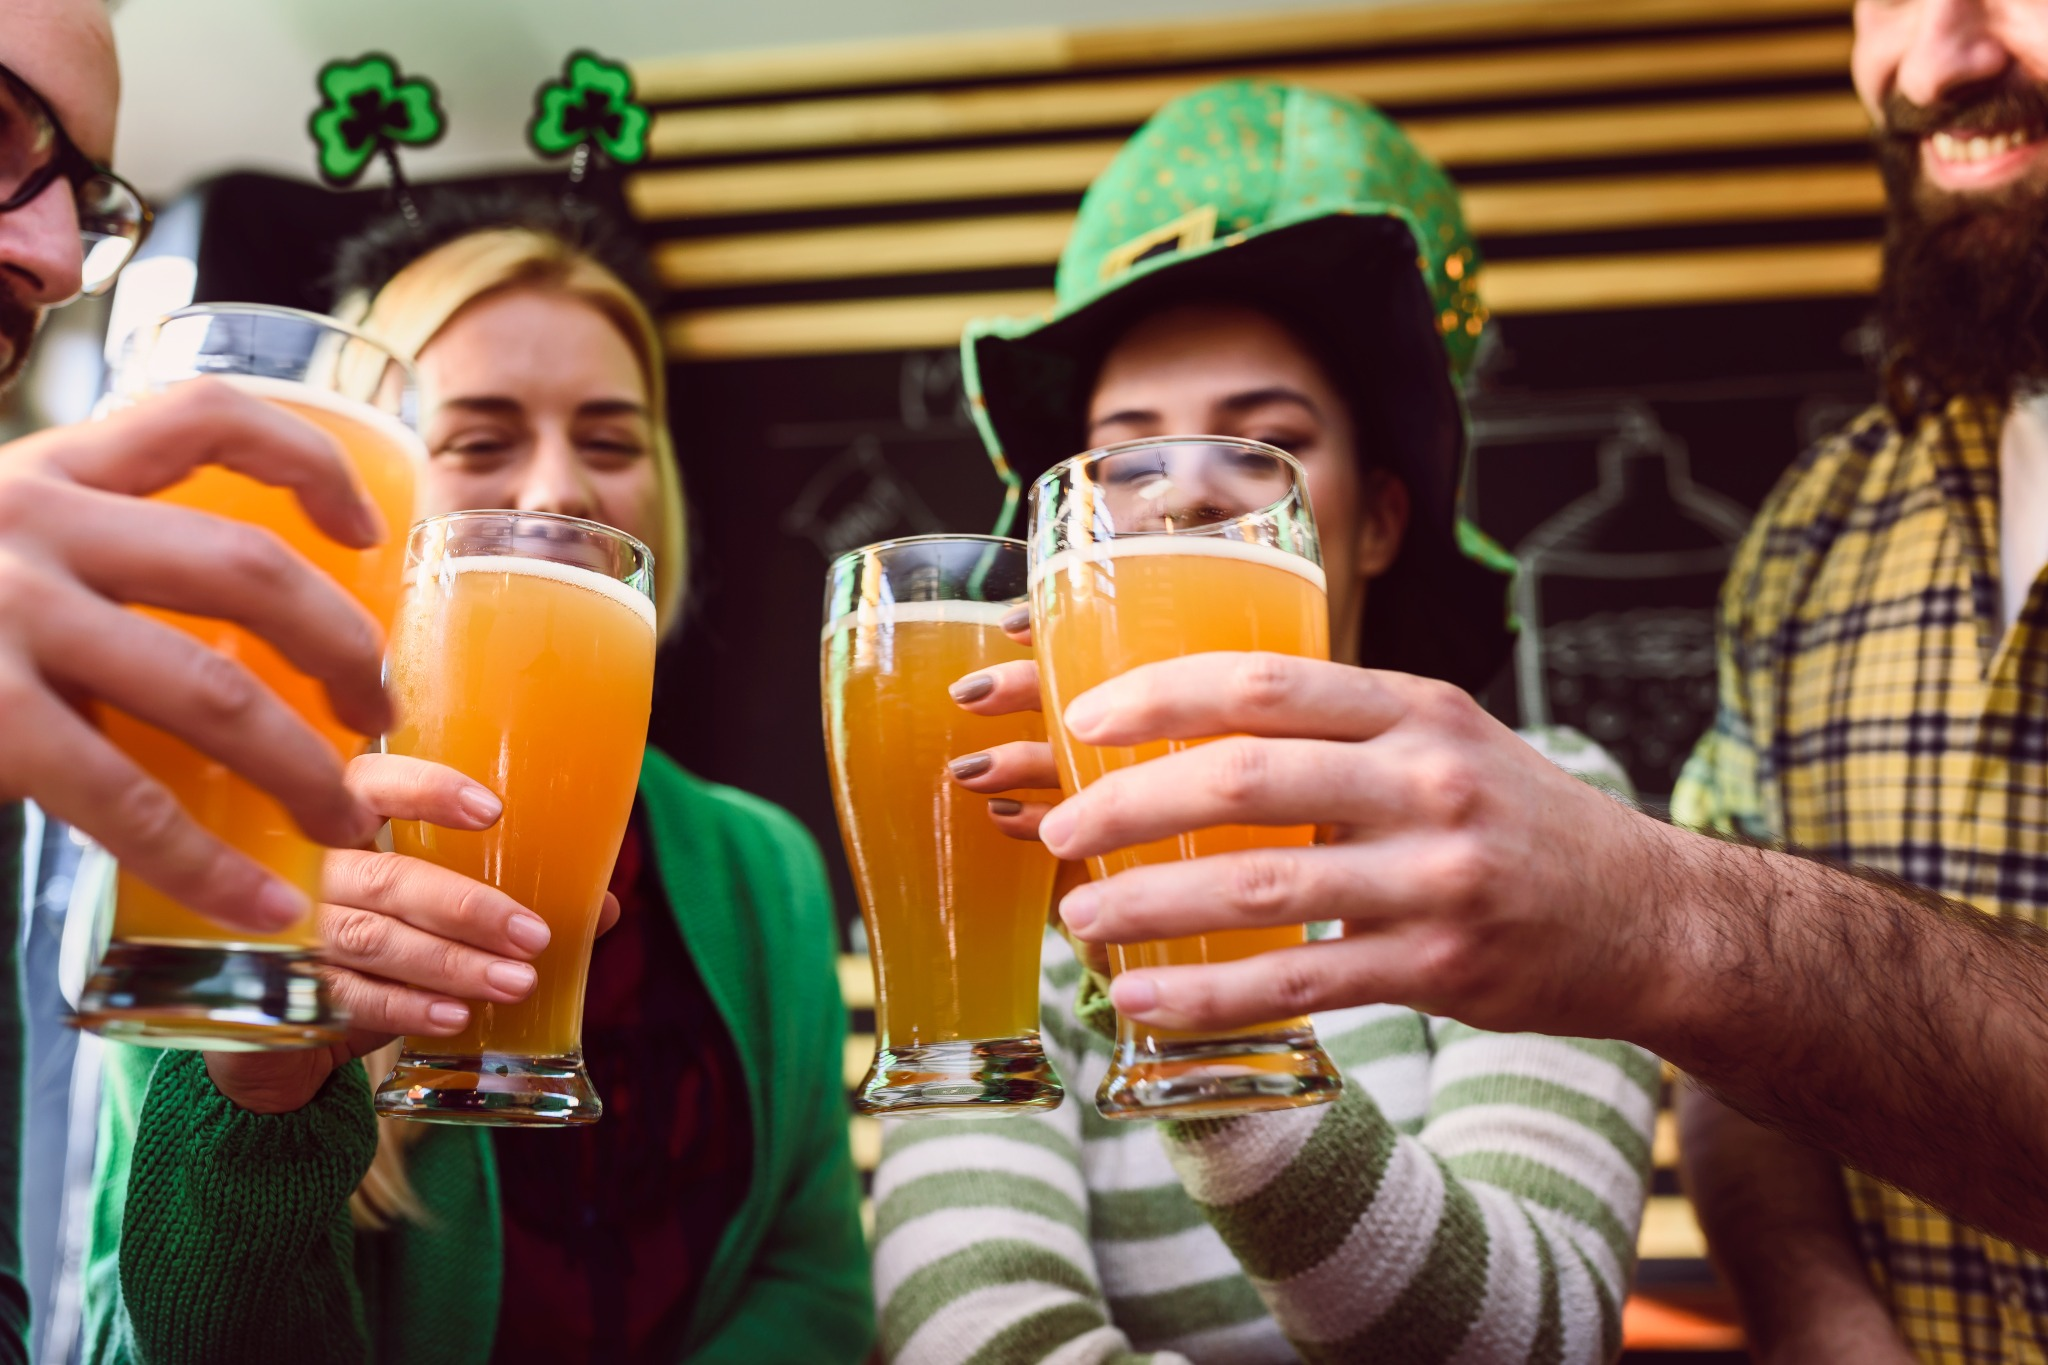 Show Your Irish Spirit with a St. Patrick's Day Outfit